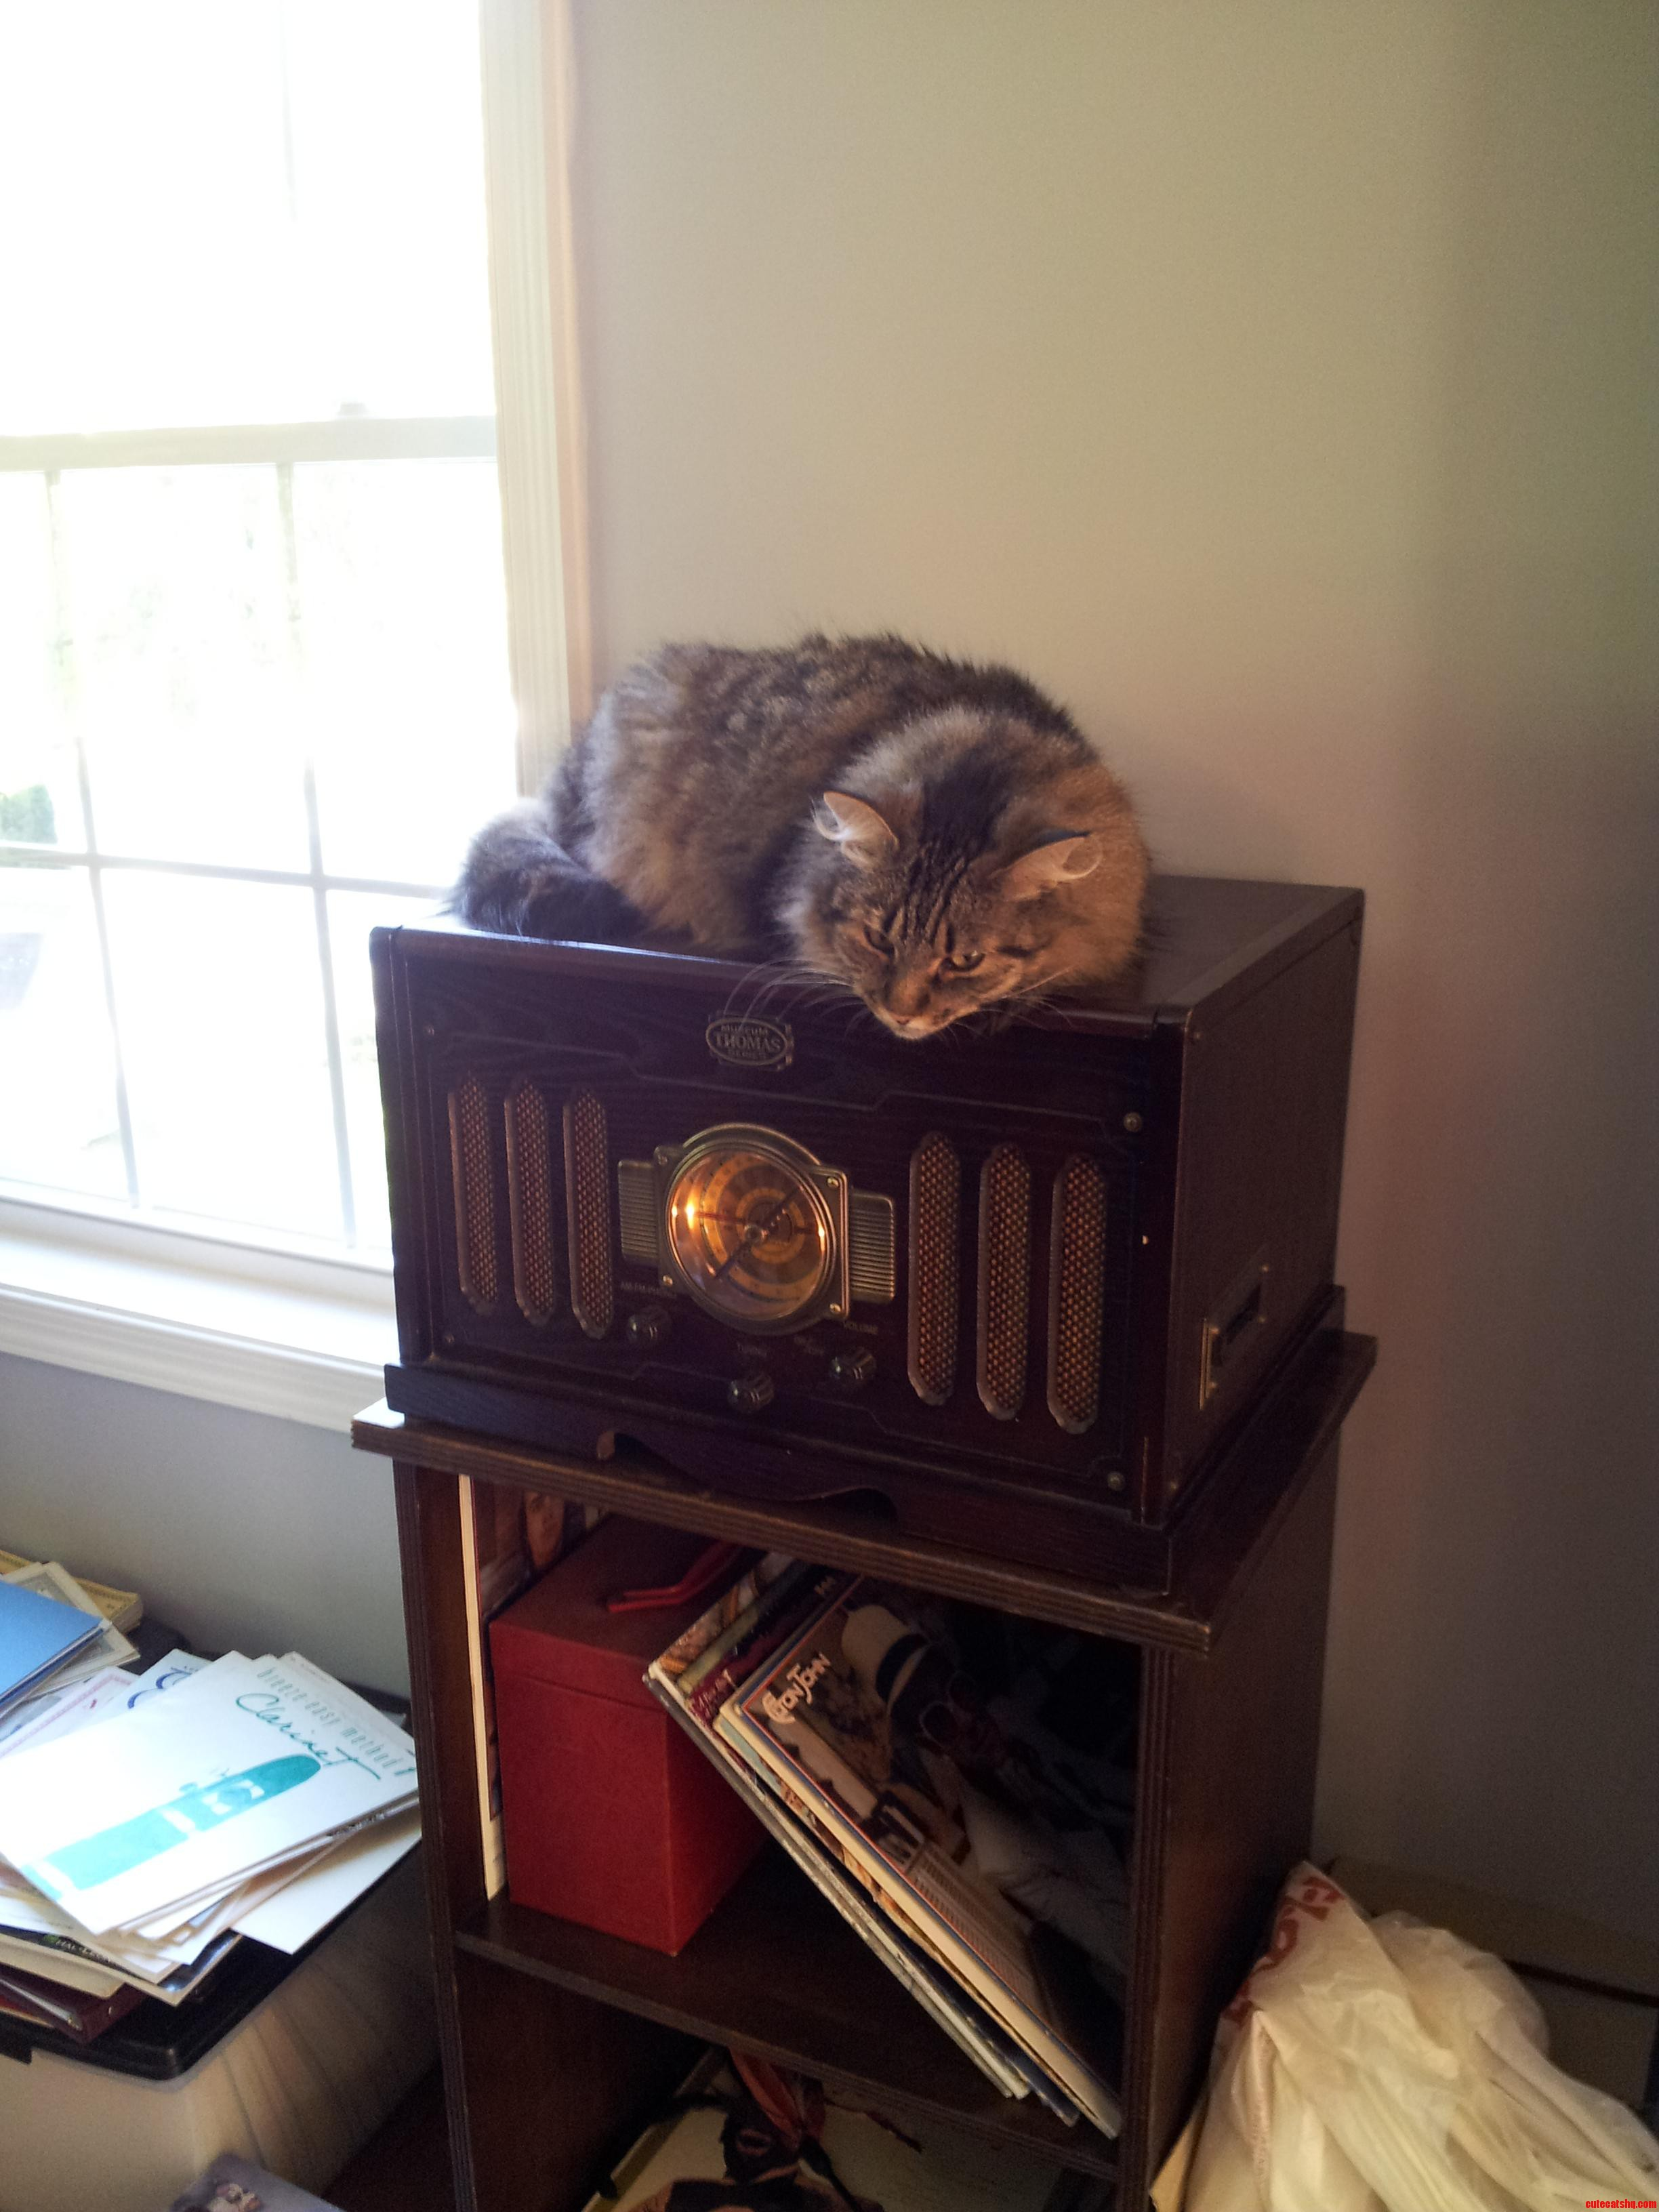 My Deaf Cat Likes To Listen To The Radio.